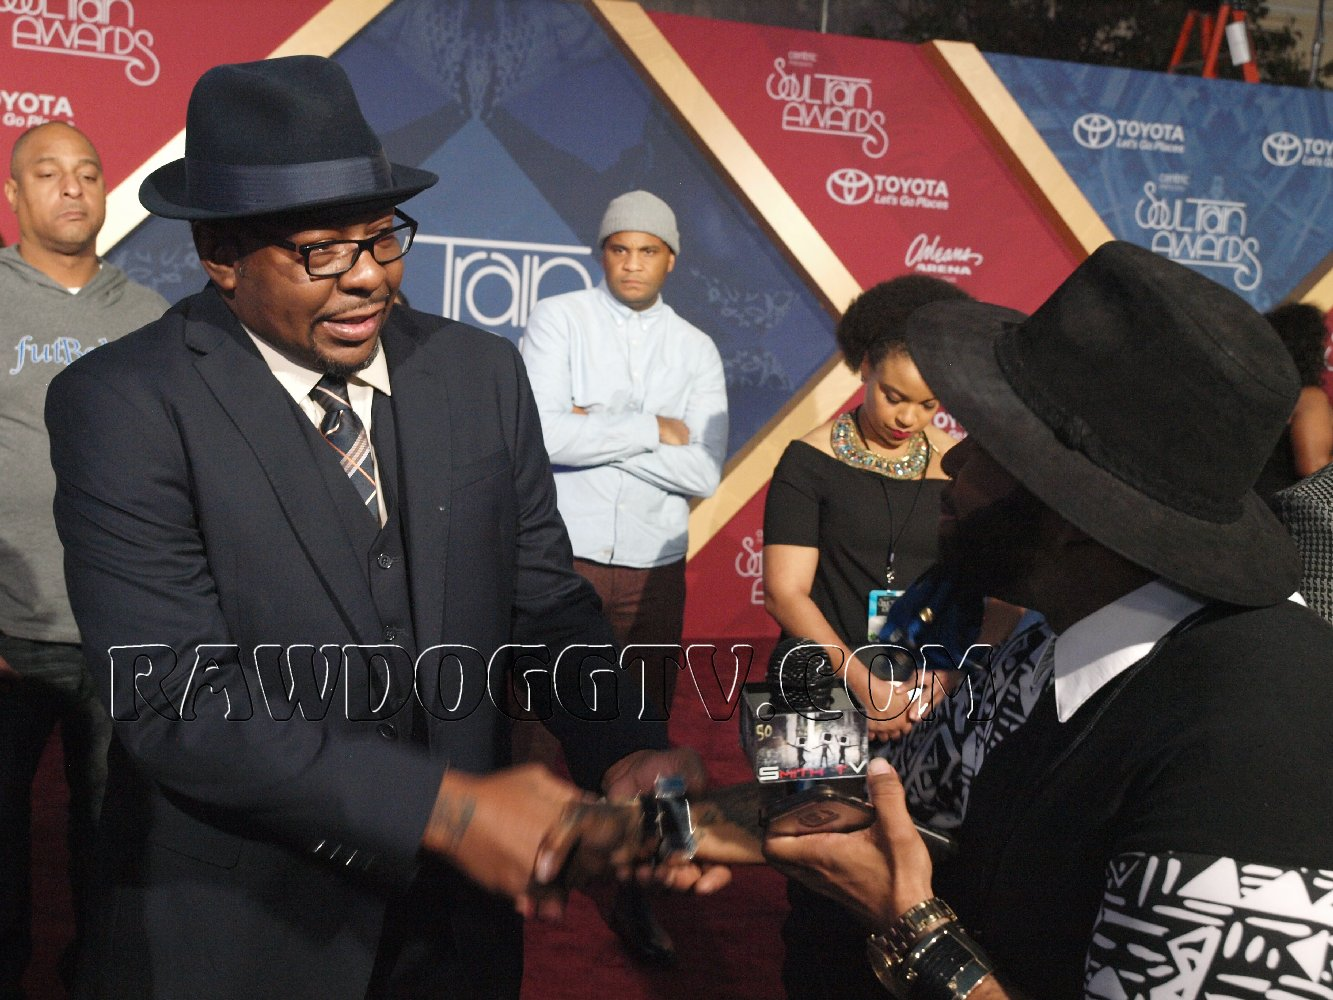 soul-train-music-awards-2016-photos-air-date-nov-27th-bet-centric-pr-mobilewire-305-490-2182-17